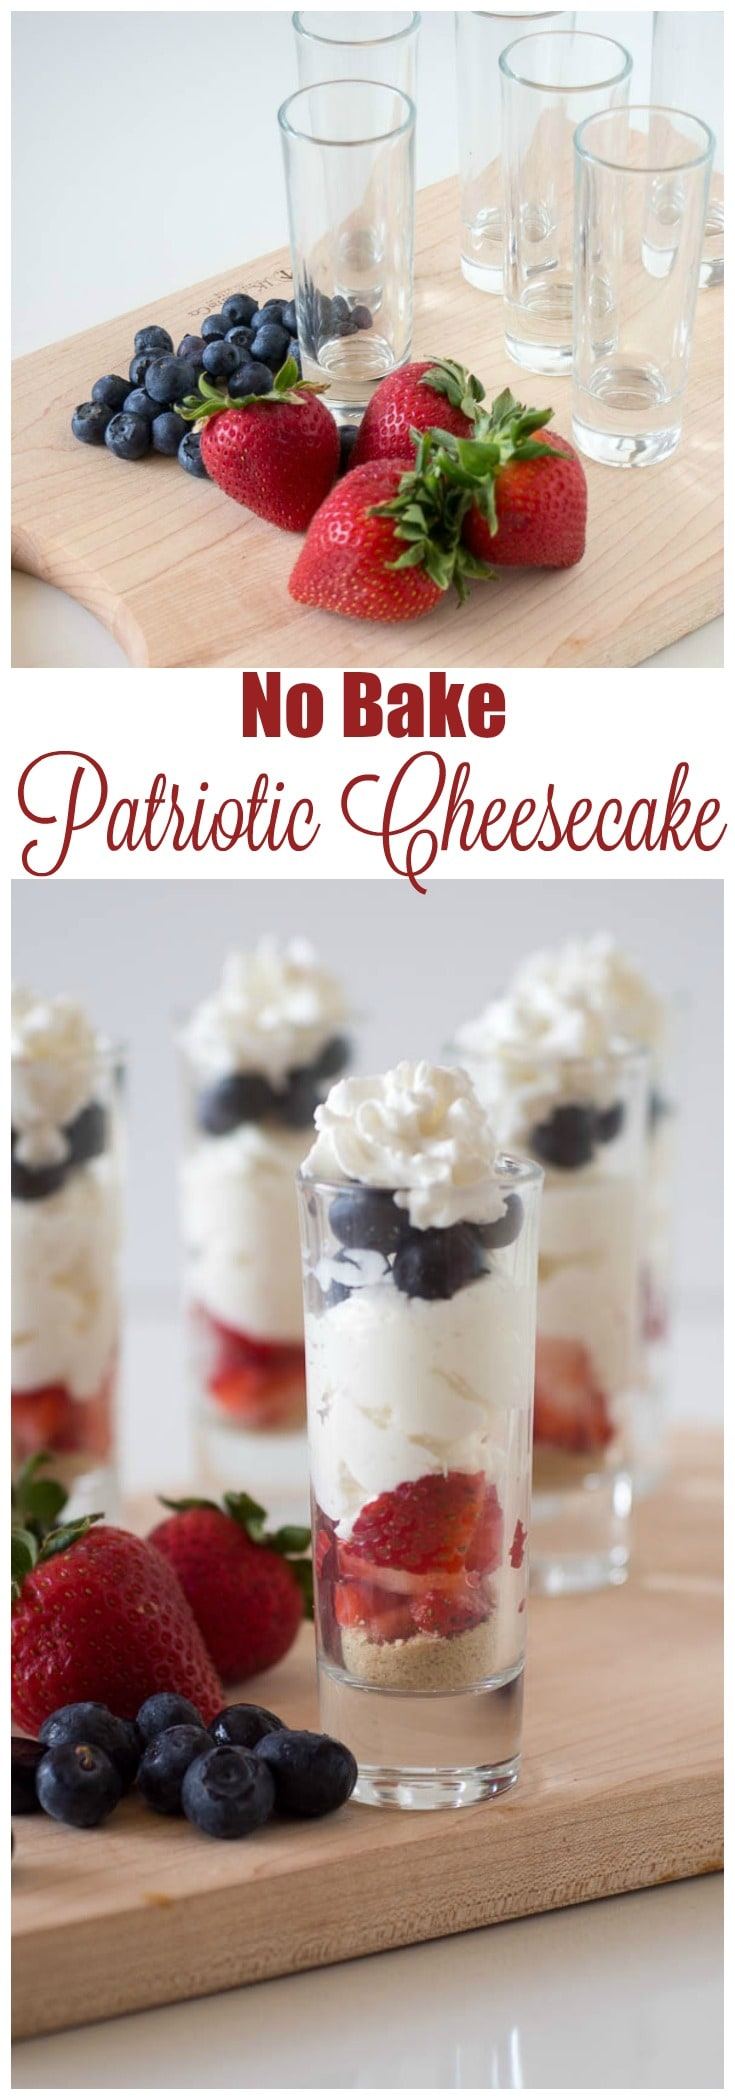 No Bake Patriotic Cheesecake Parfaits - an easy summer time dessert which pairs strawberries, blueberries, and cheesecake for a red, white and blue treat